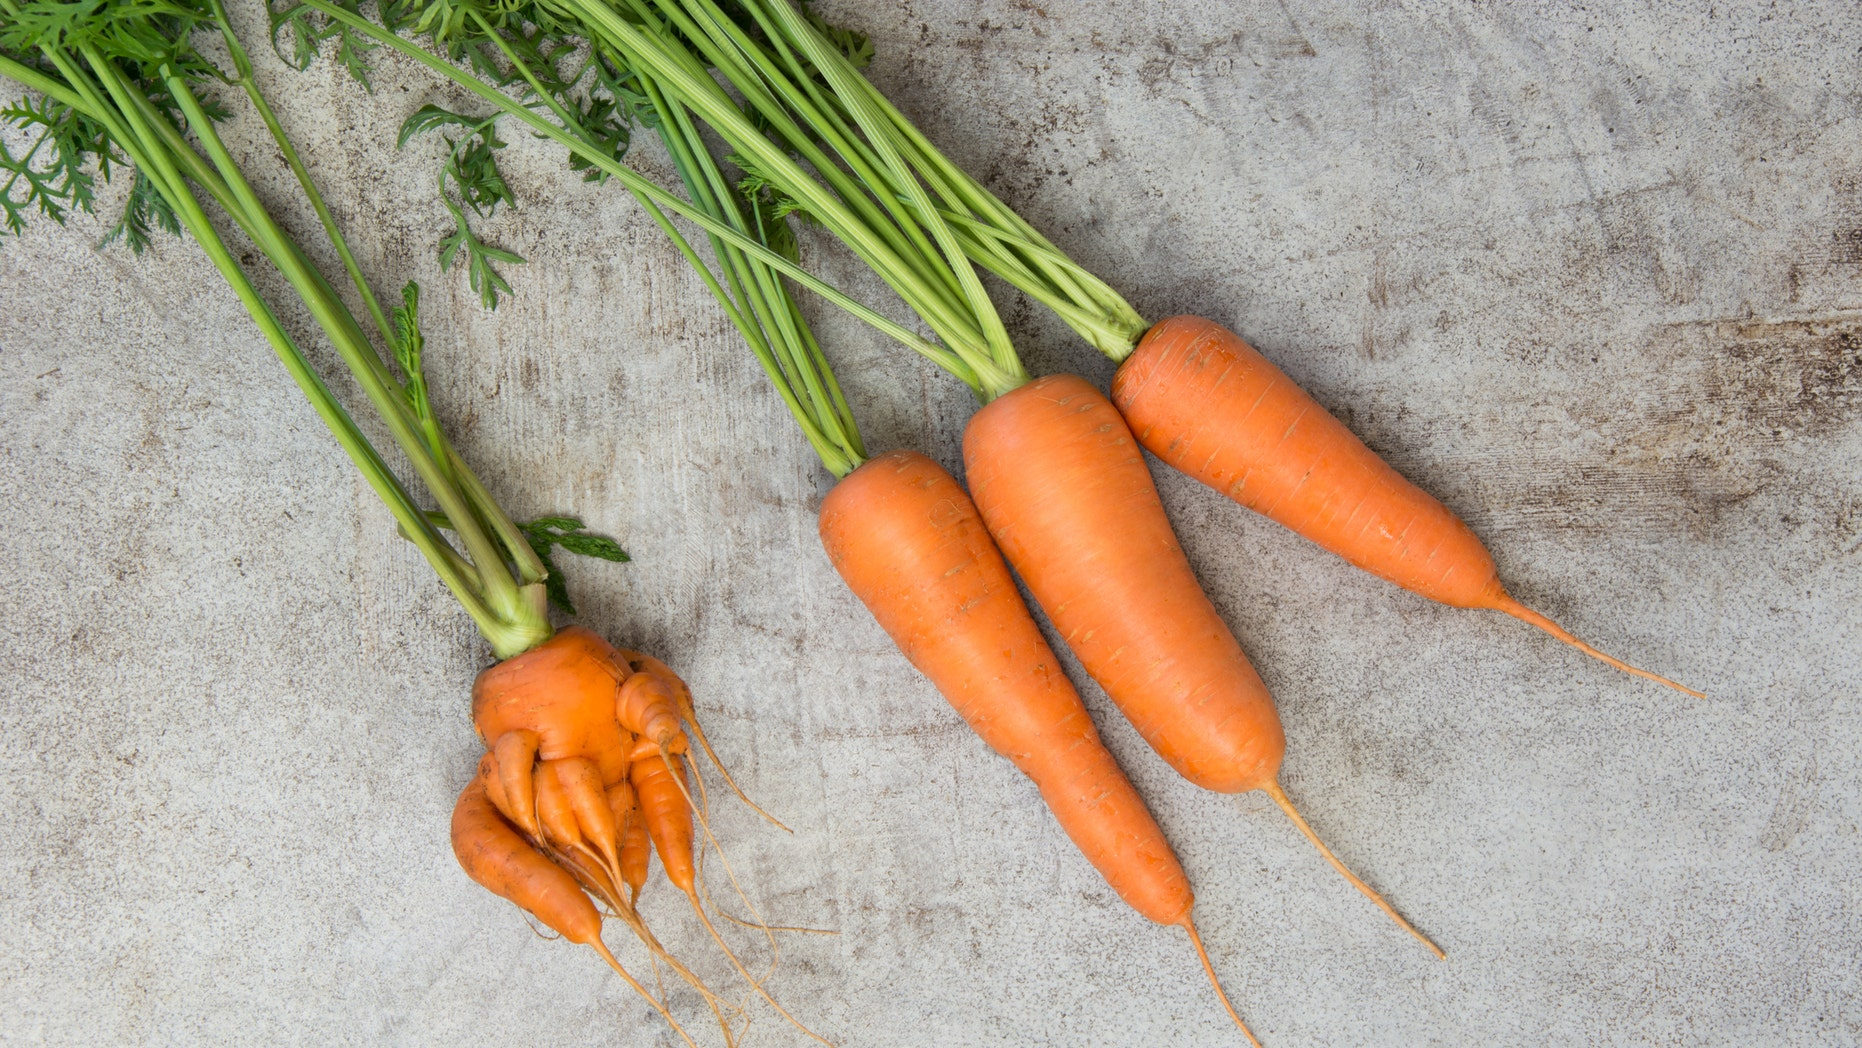 This freaky-looking carrot might find a home